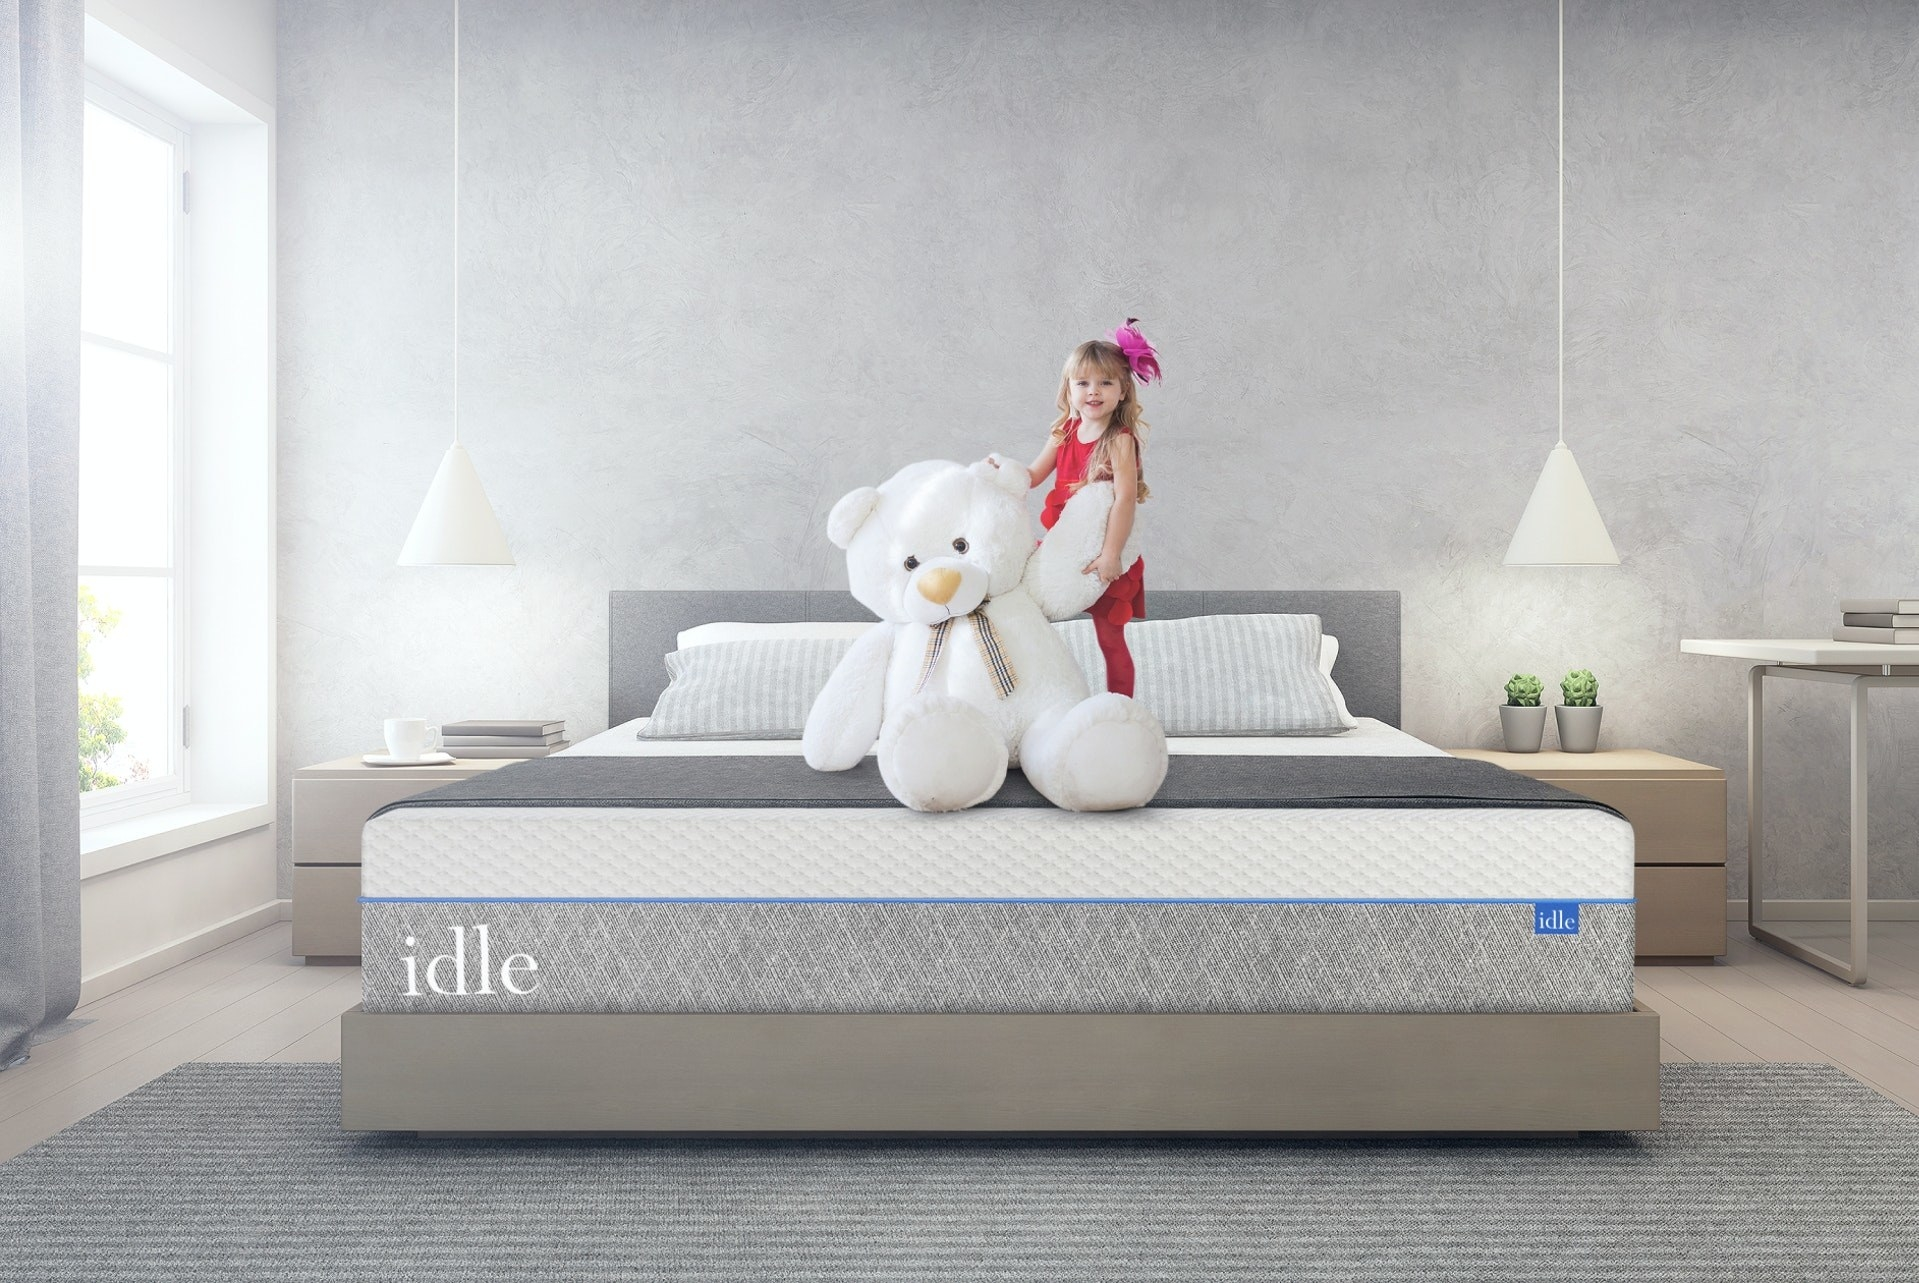 child and teddy bear on mattress